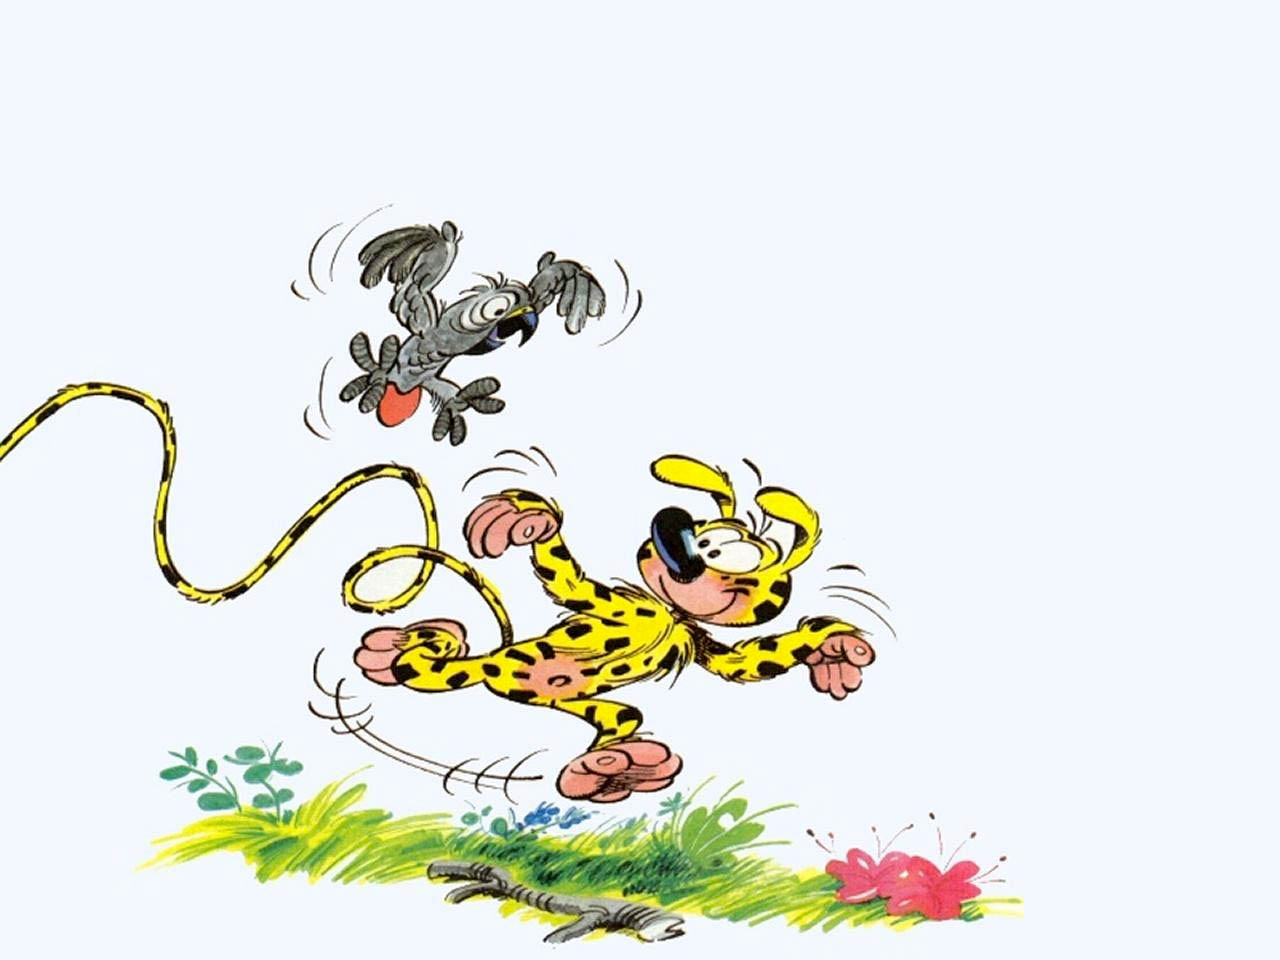 Hd Disney Cartoon Wallpapers Marsupilami Cartoon New Hd Wallpapers High Quality All